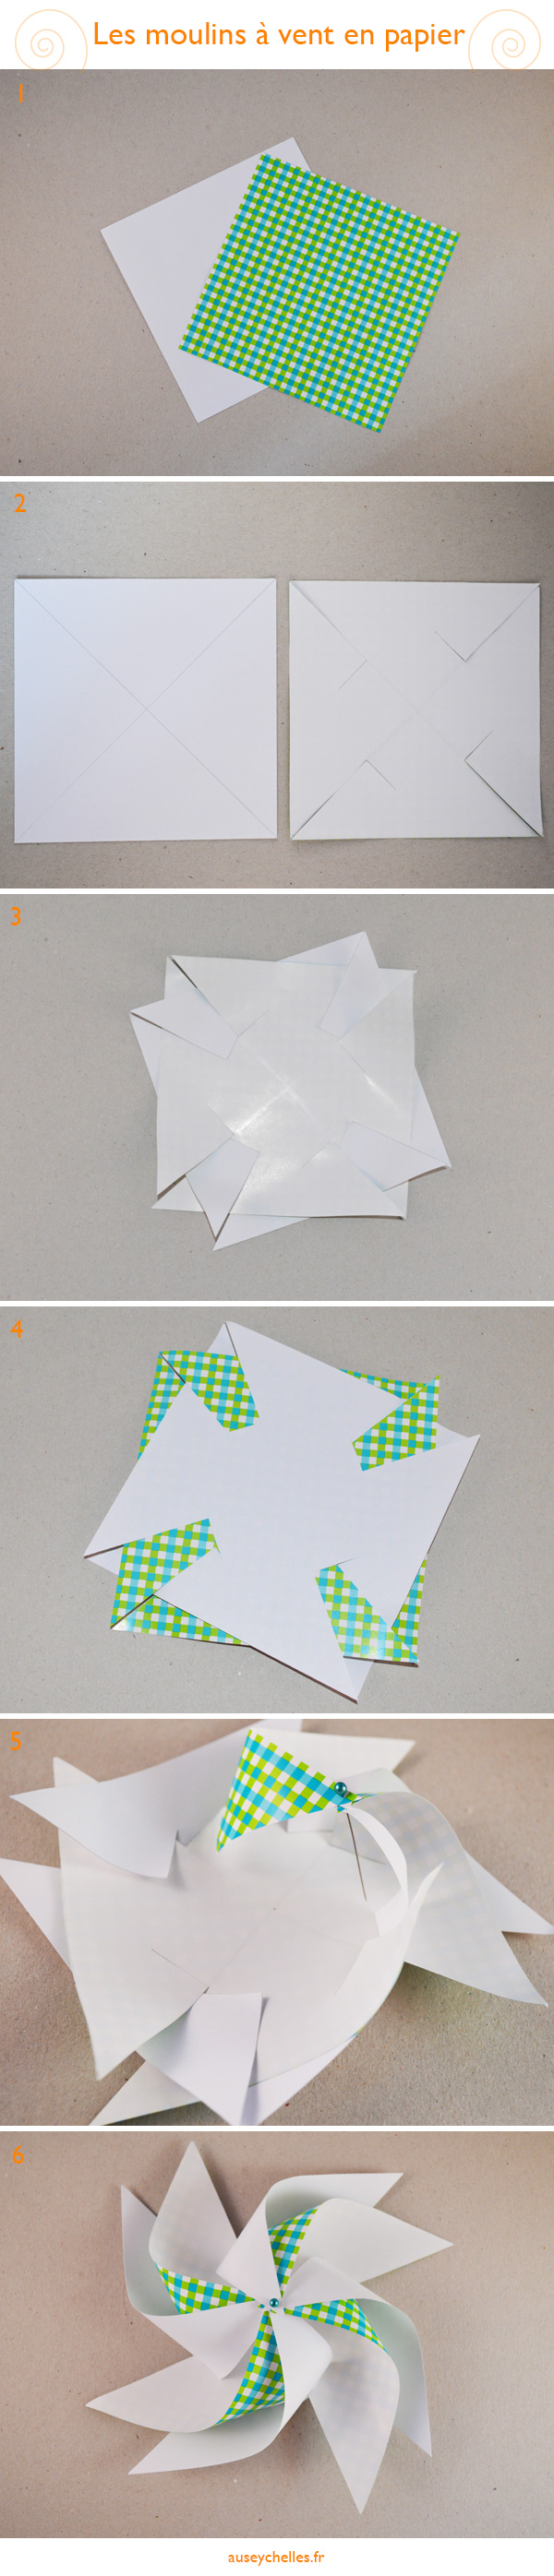 tutoriel moulin à vent en papier